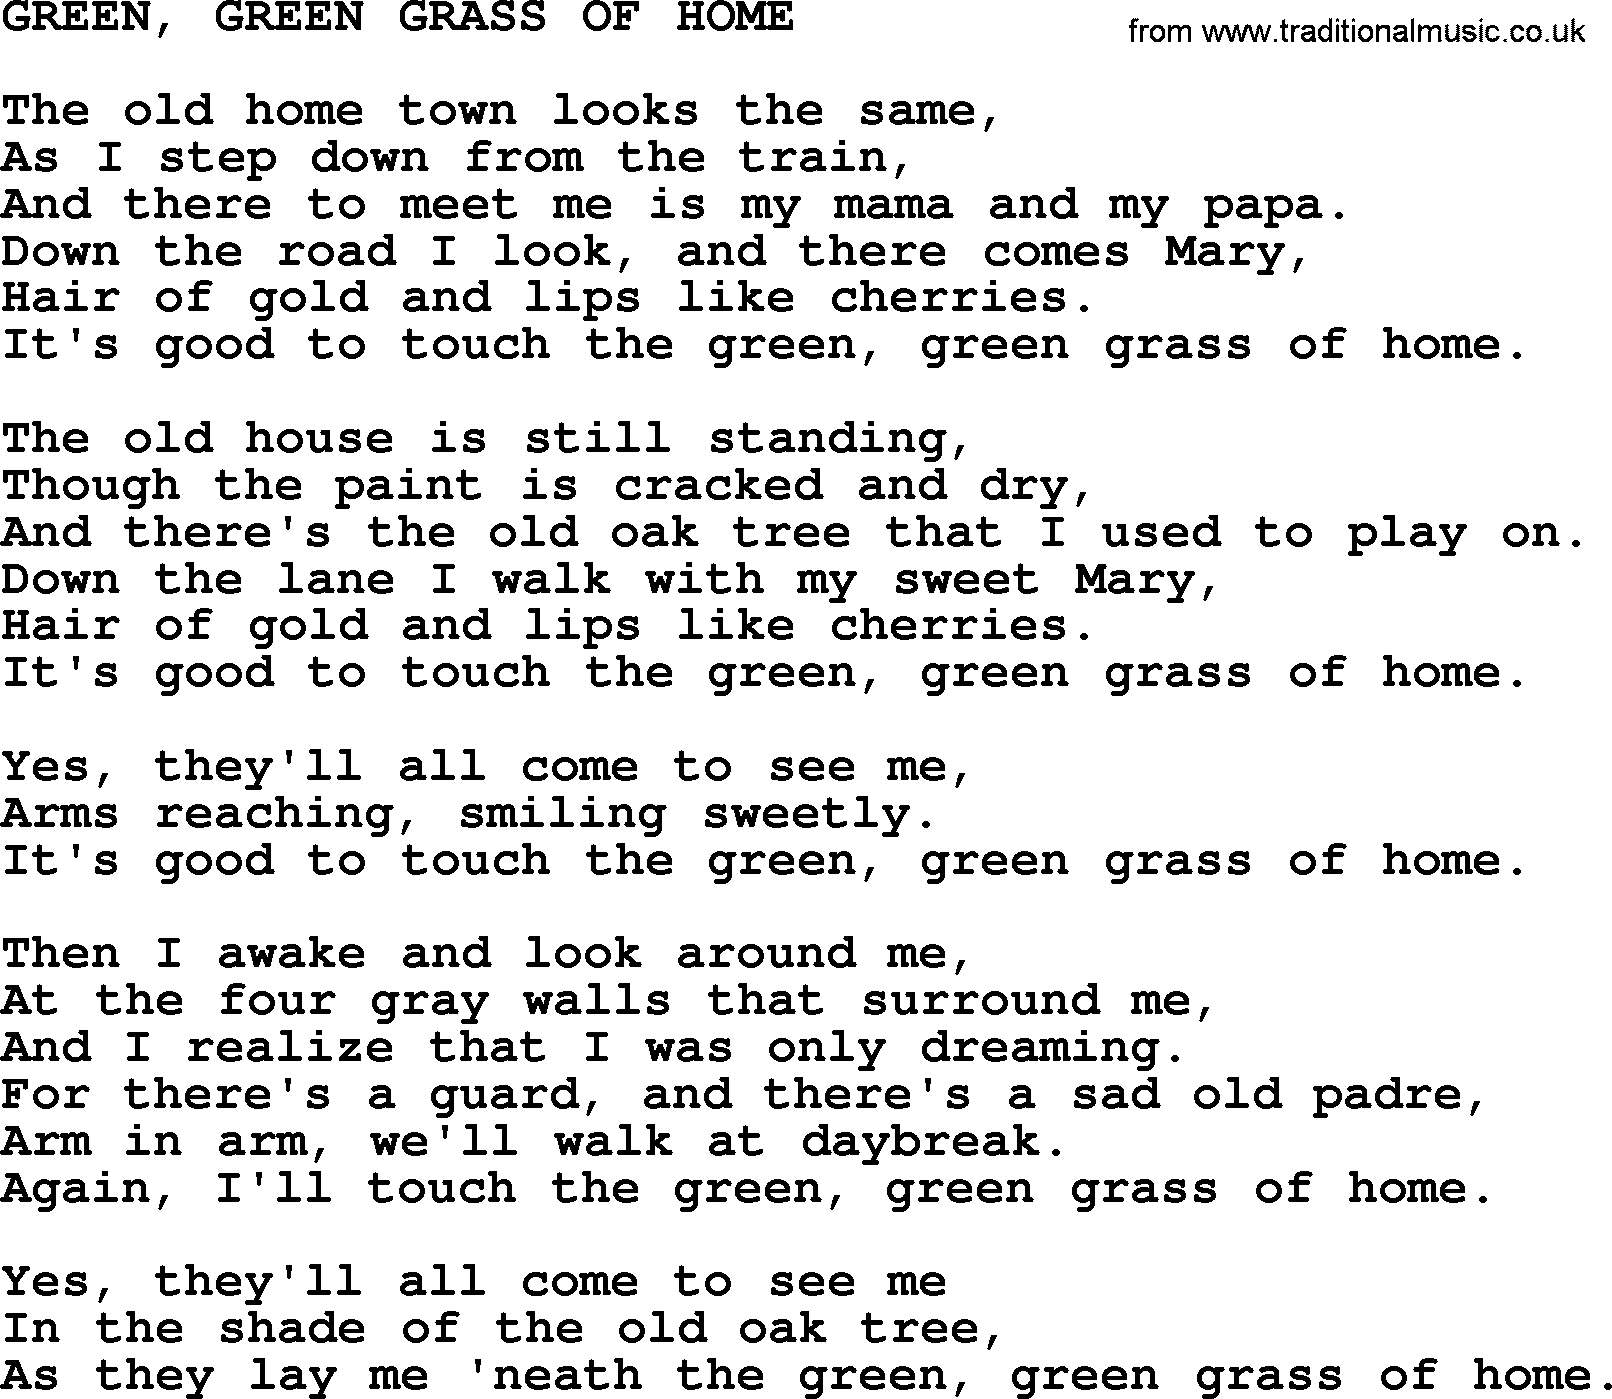 Johnny Cash song: Green, Green Grass Of Home, lyrics